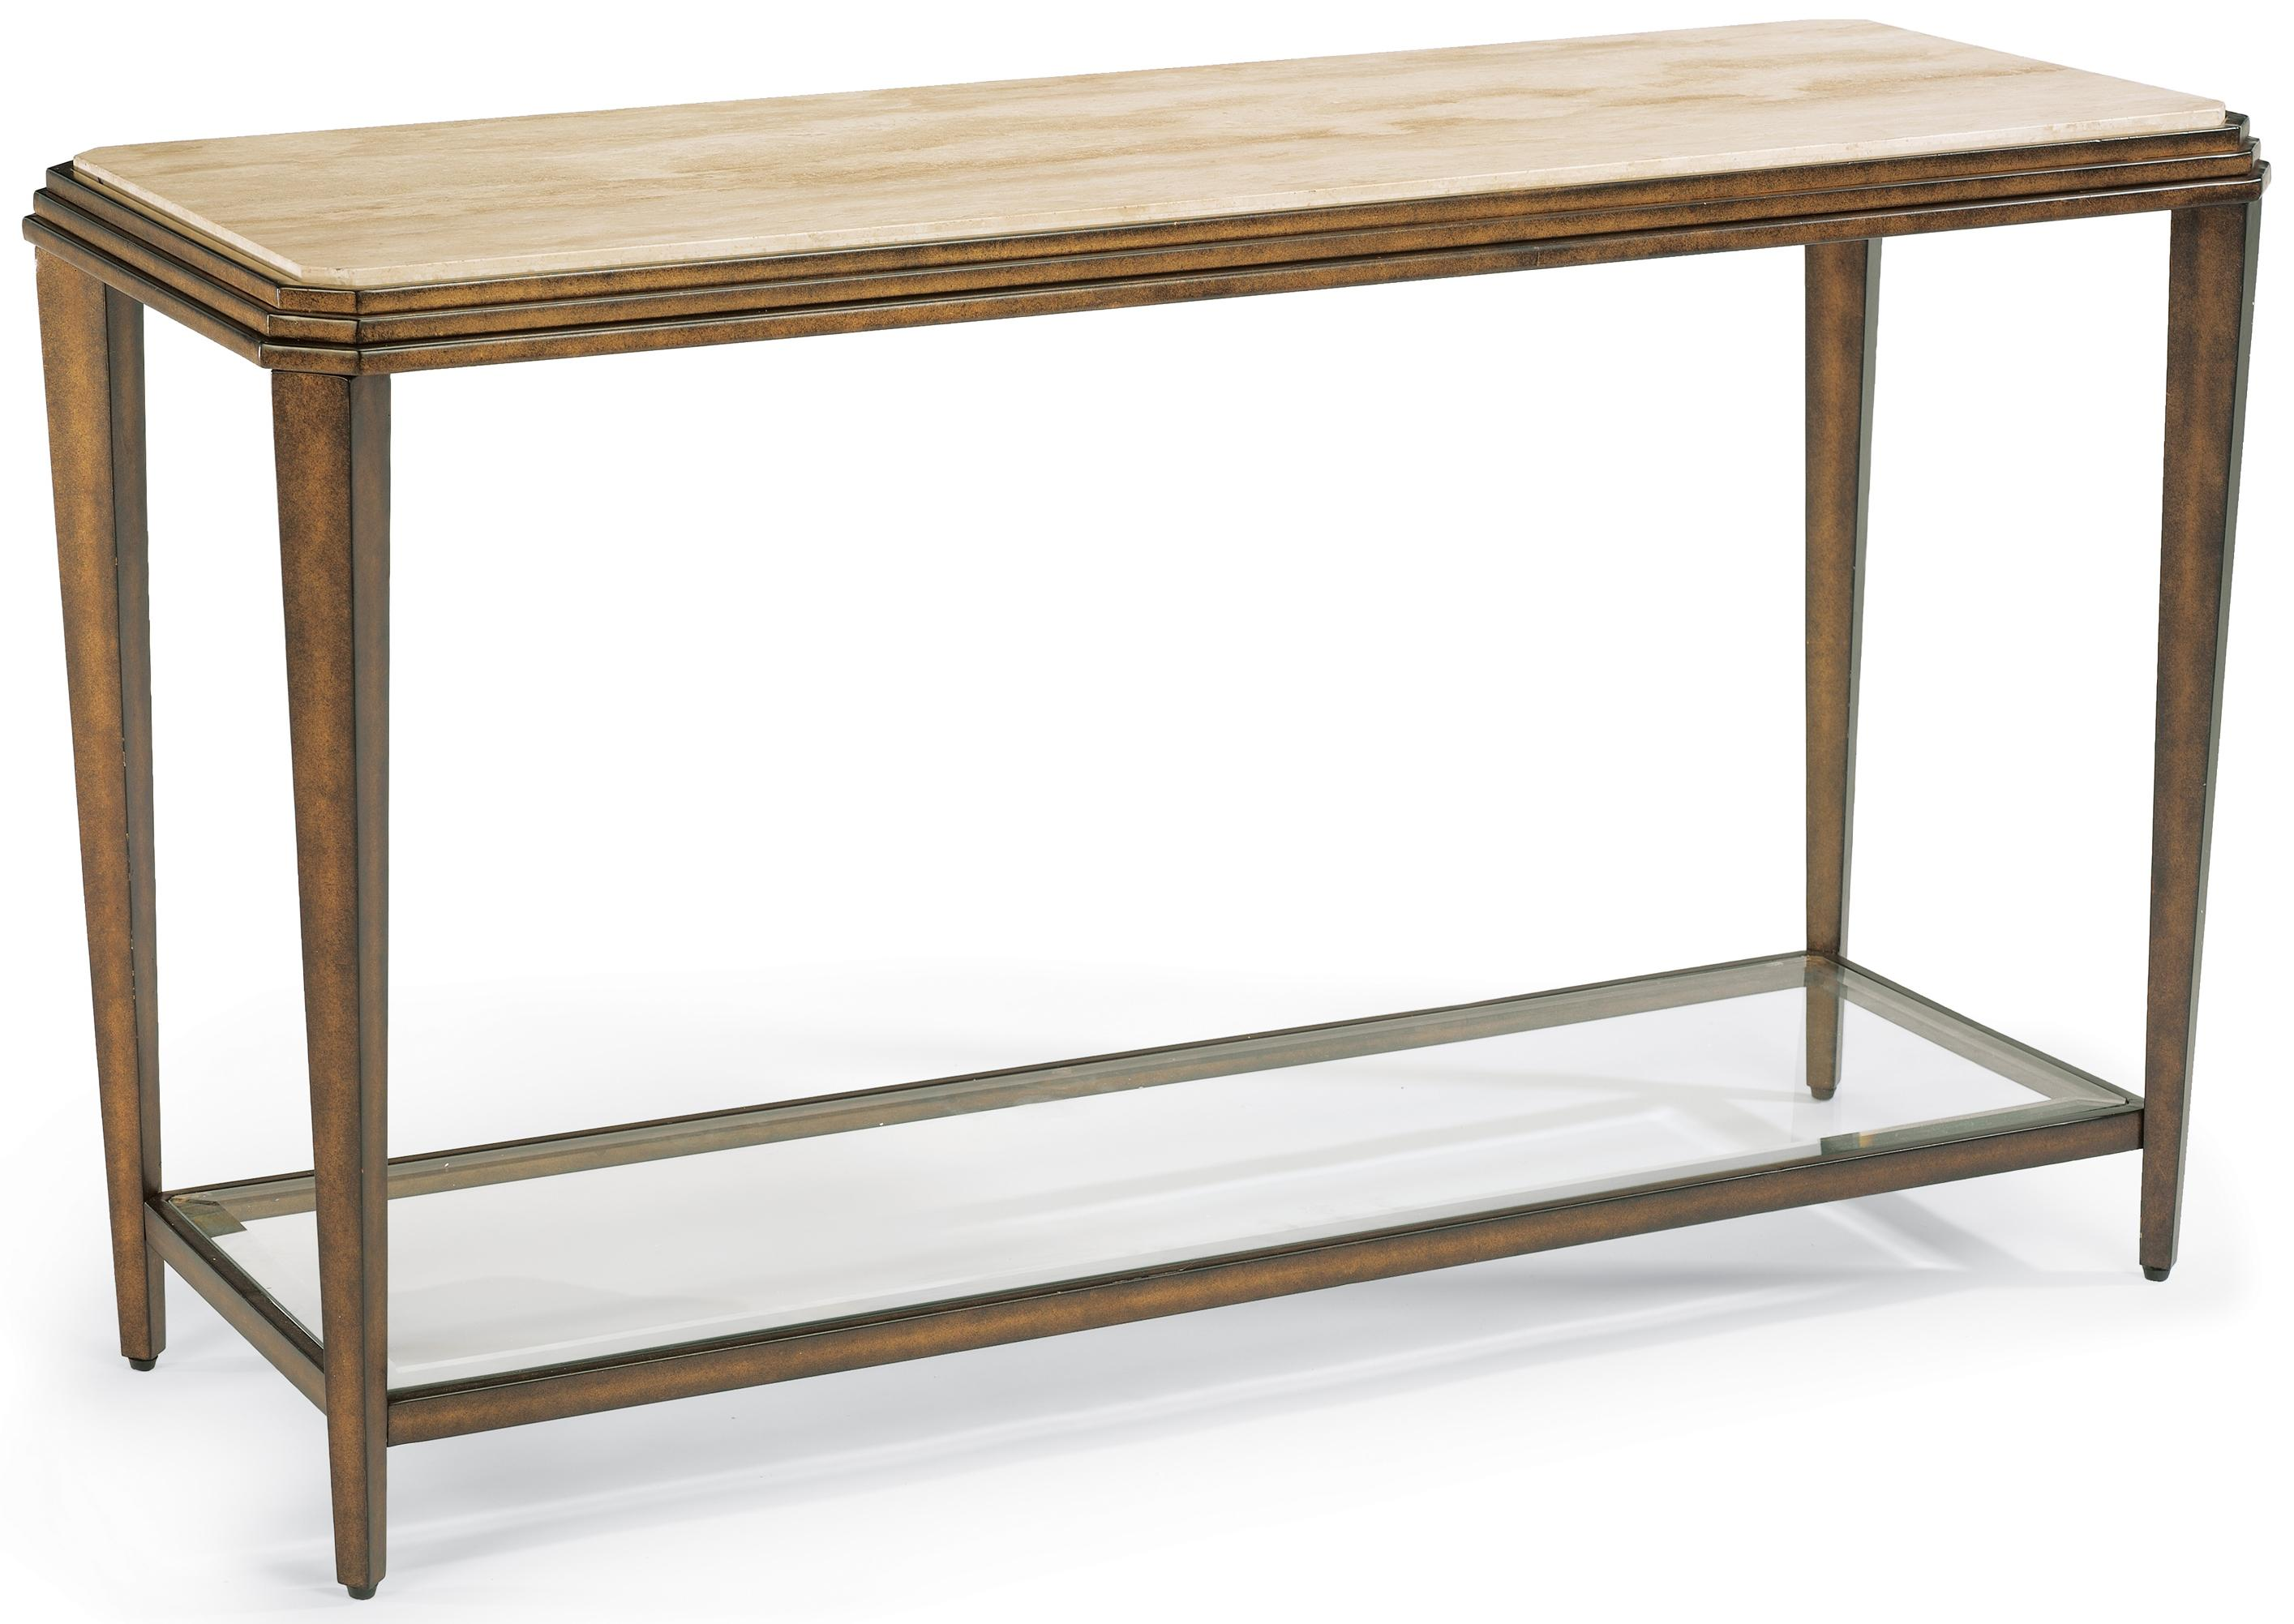 Flexsteel seville metal sofa table with marble top ahfa sofa flexsteel seville metal sofa table with marble top ahfa sofa table dealer locator watchthetrailerfo